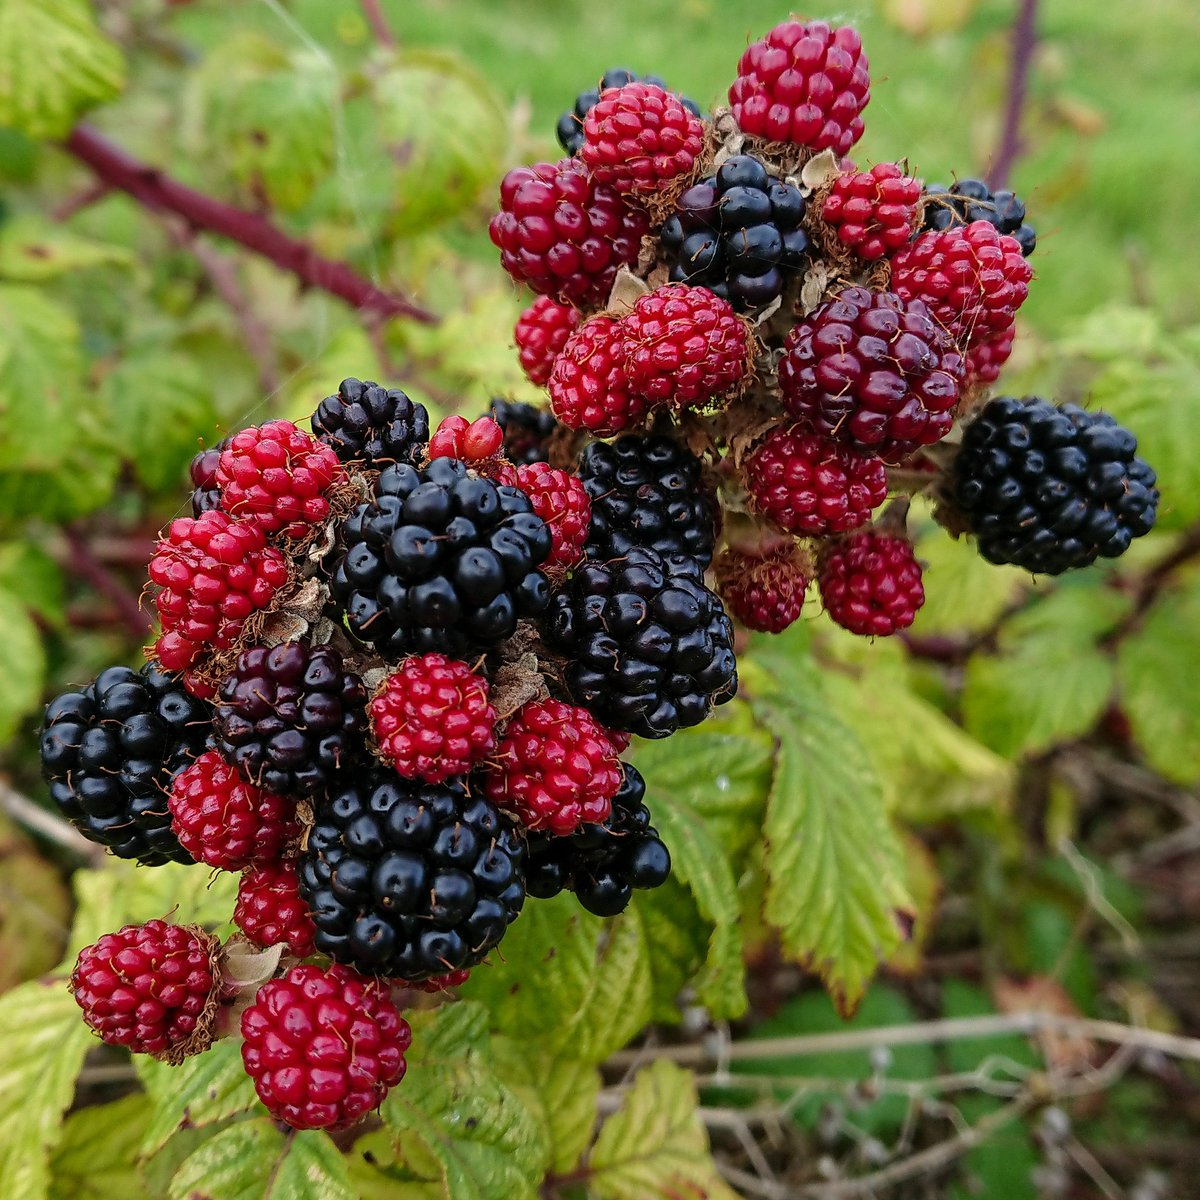 test Twitter Media - Blackberries in the hedgerows and leaves starting to curl at the edges must mean only one thing - Autumn is coming. Nature's colour palette. #Plymouth #Ivybridge #Autumn #Blackberries https://t.co/GTH4jRsKfQ